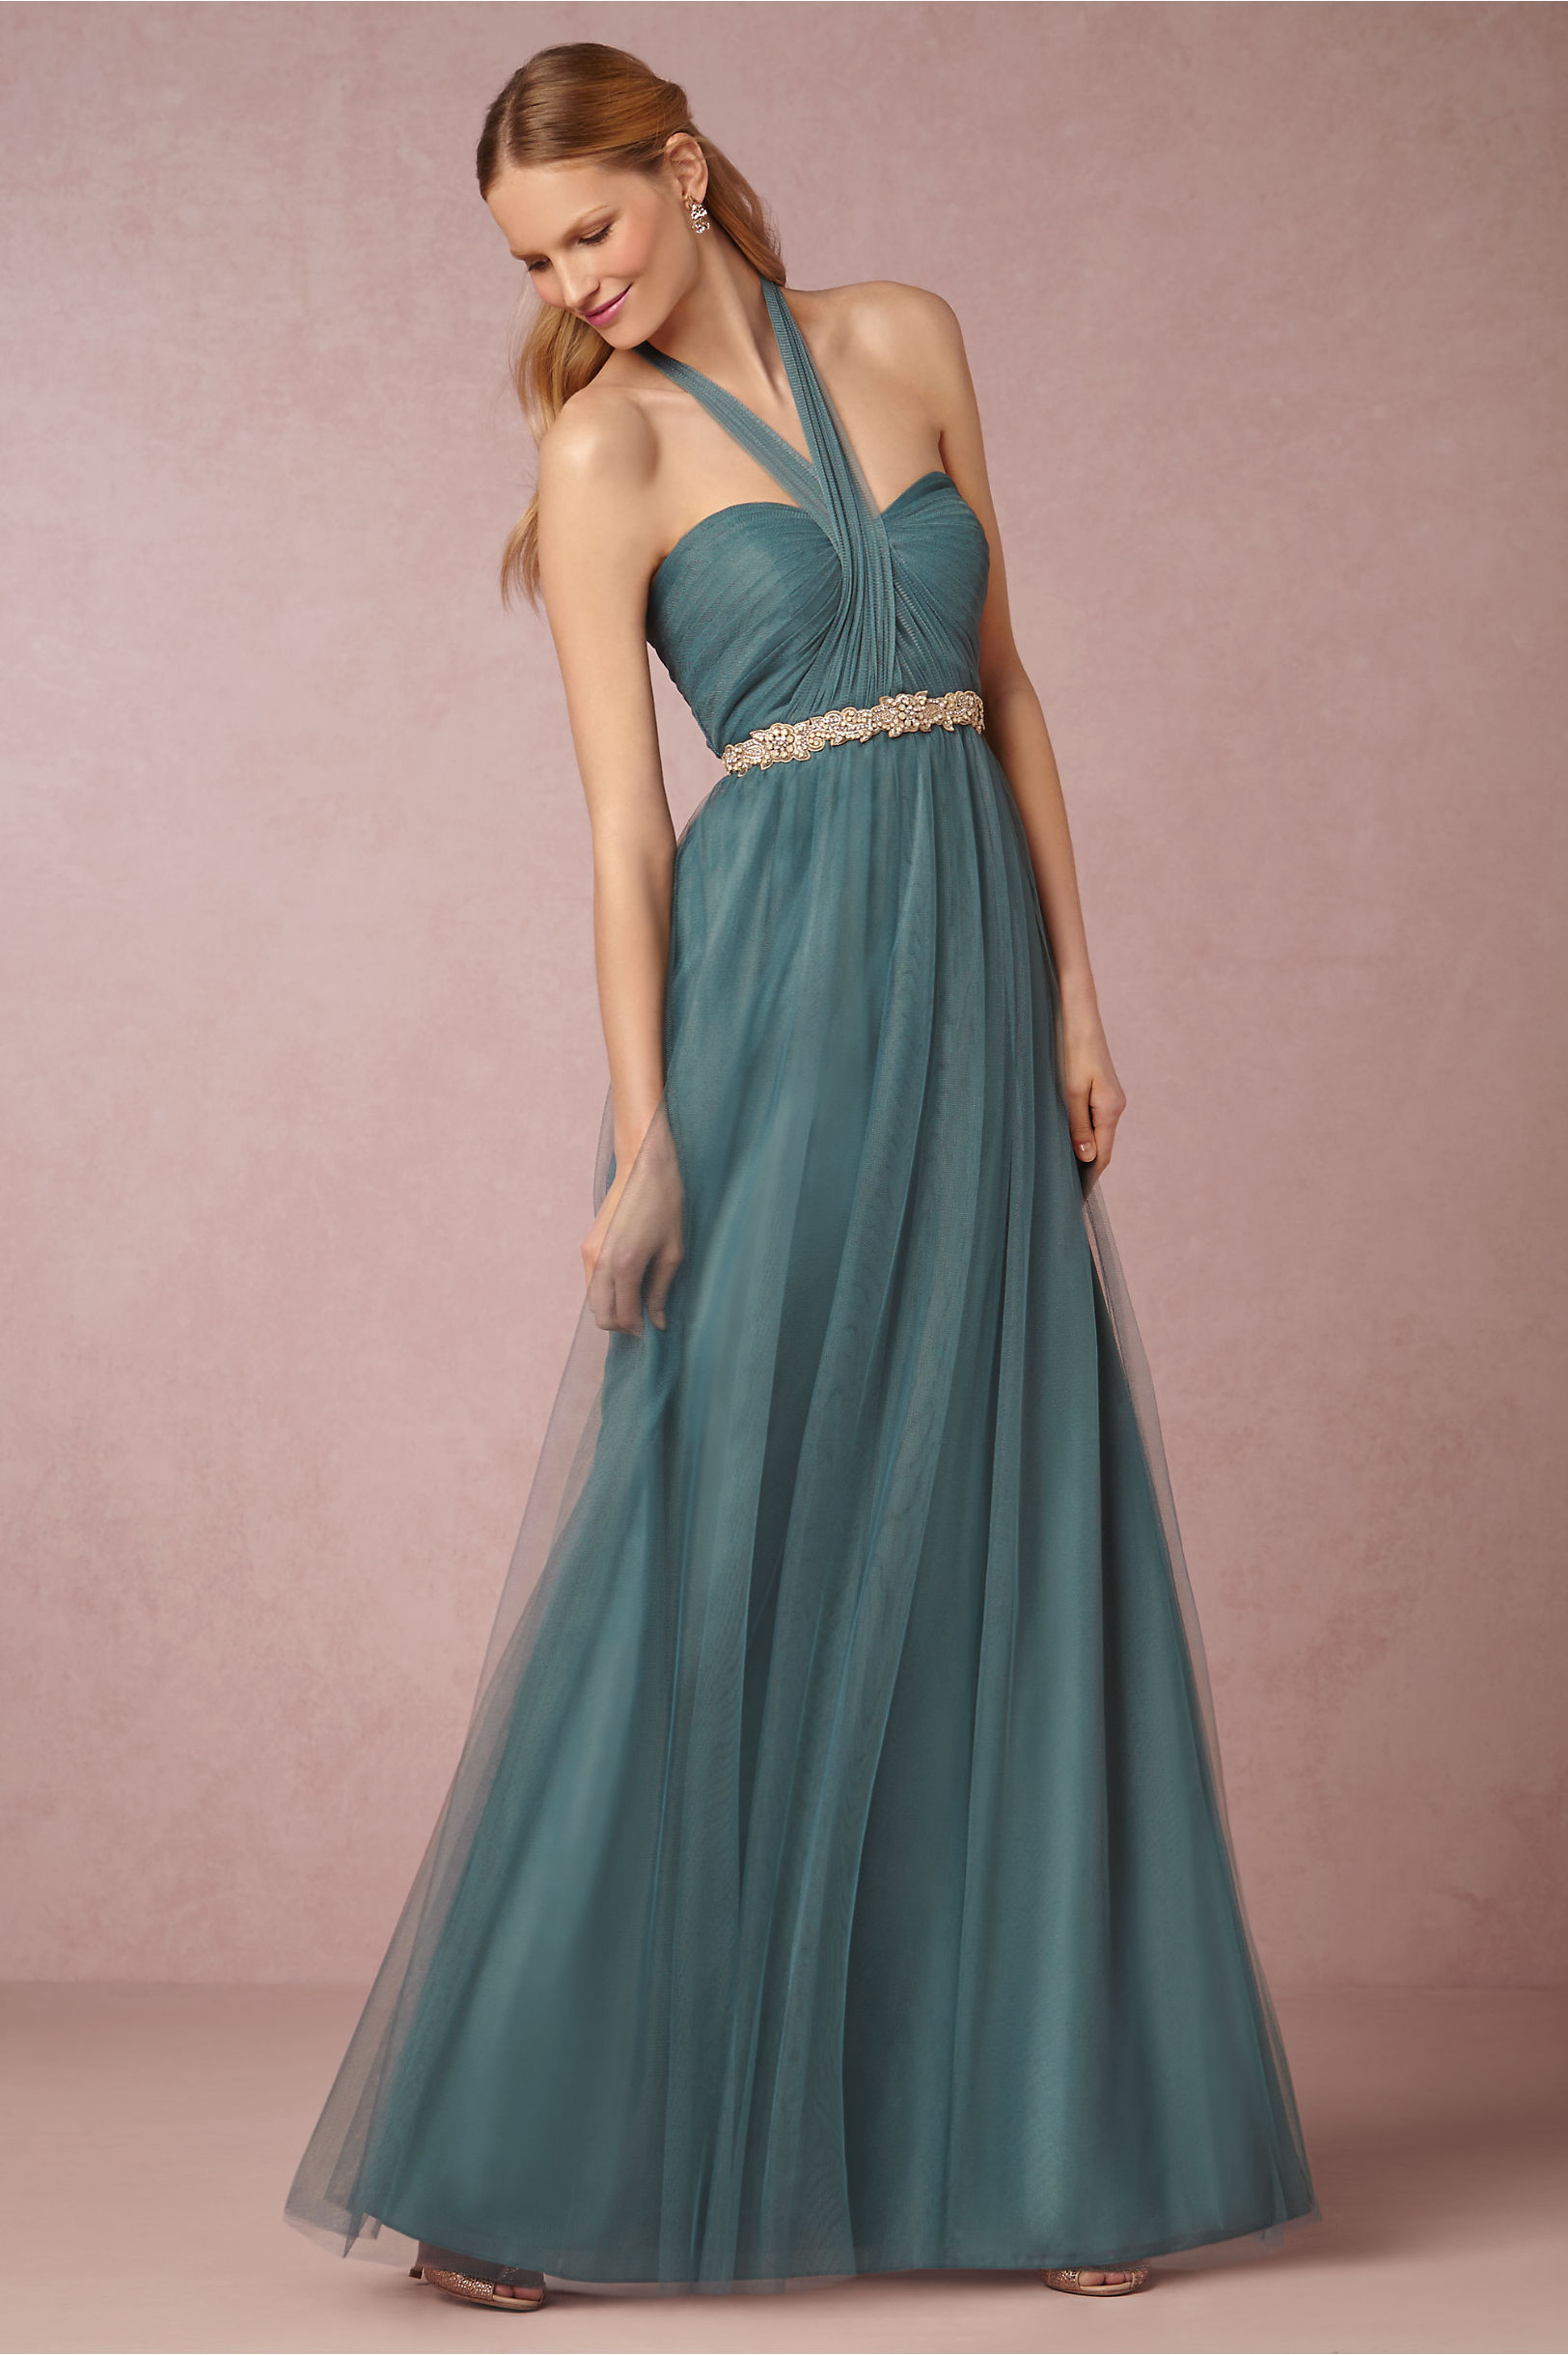 Annabelle dress in bridal party bhldn jenny yoo vintage teal annabelle dress bhldn ombrellifo Gallery